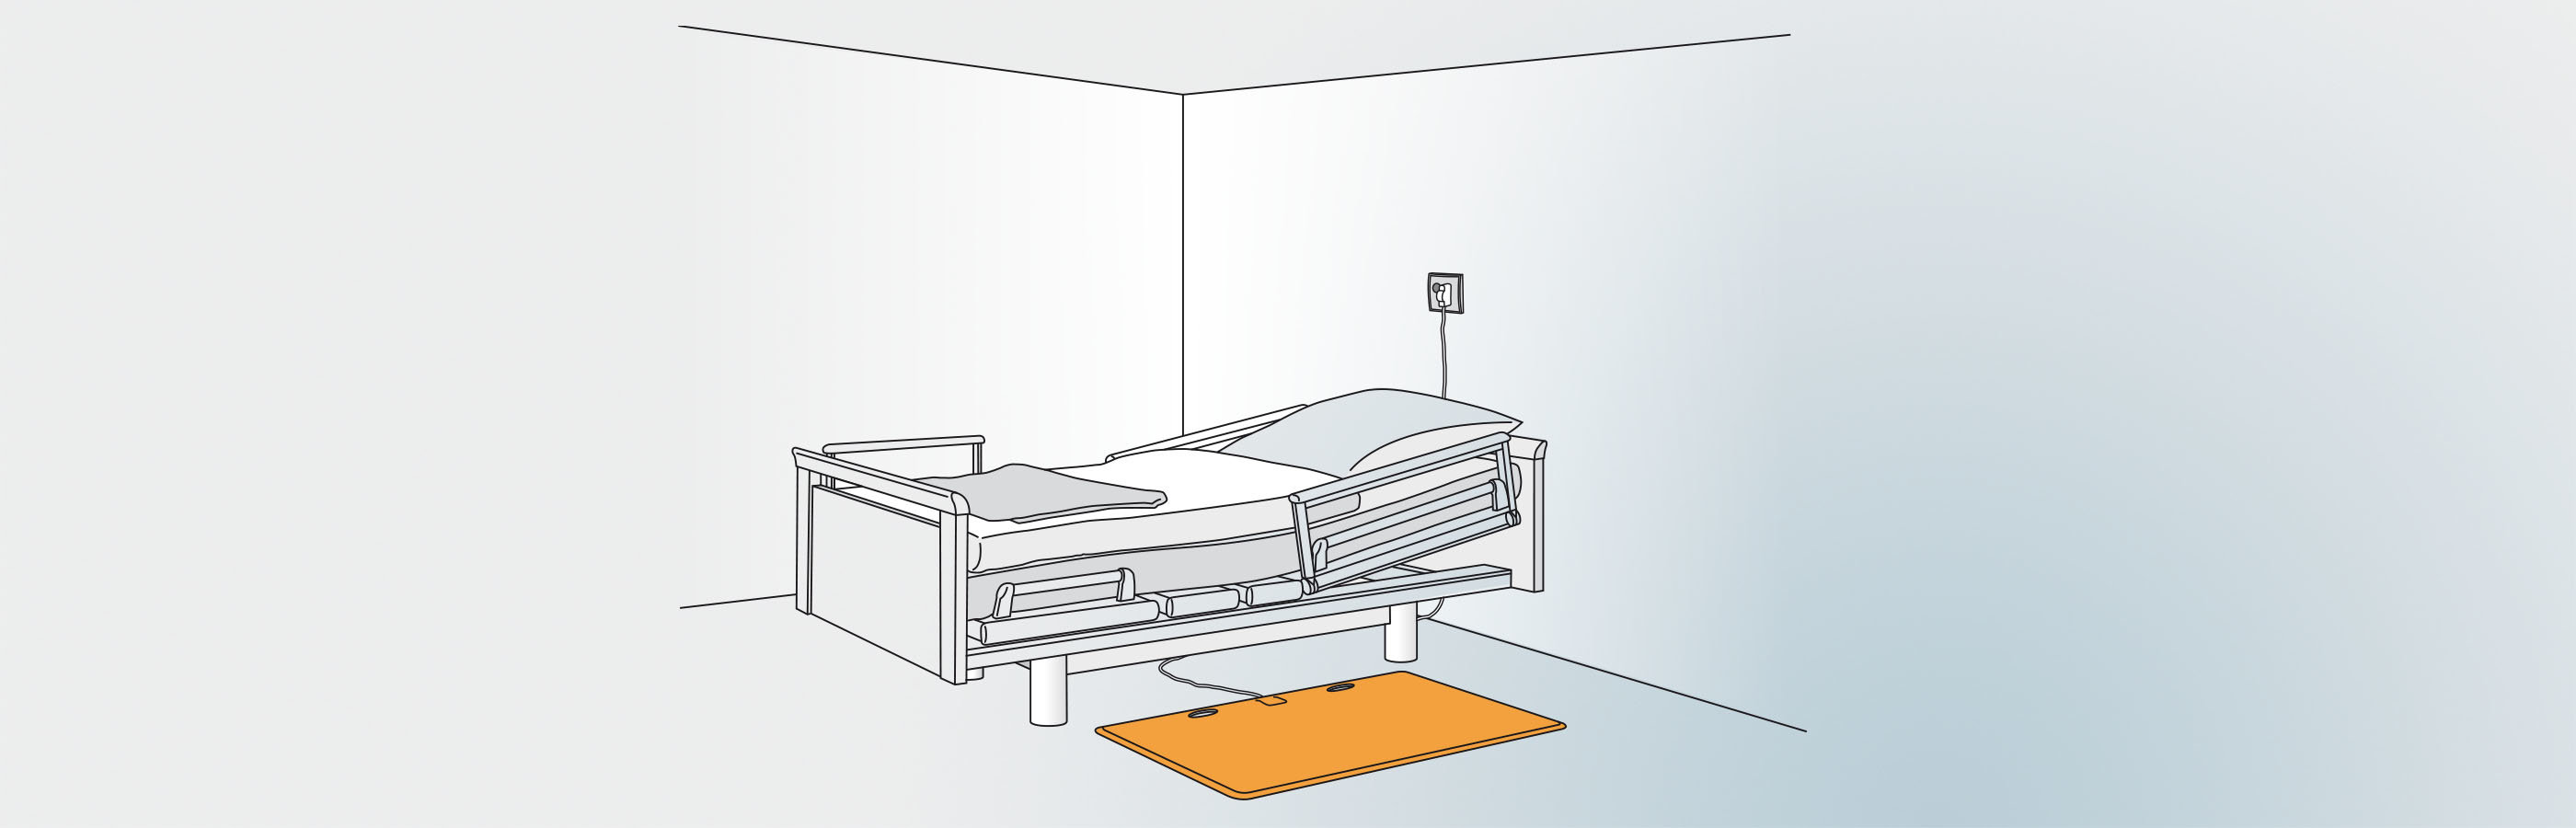 CareMat safety pressure mat in front of a patient's bed